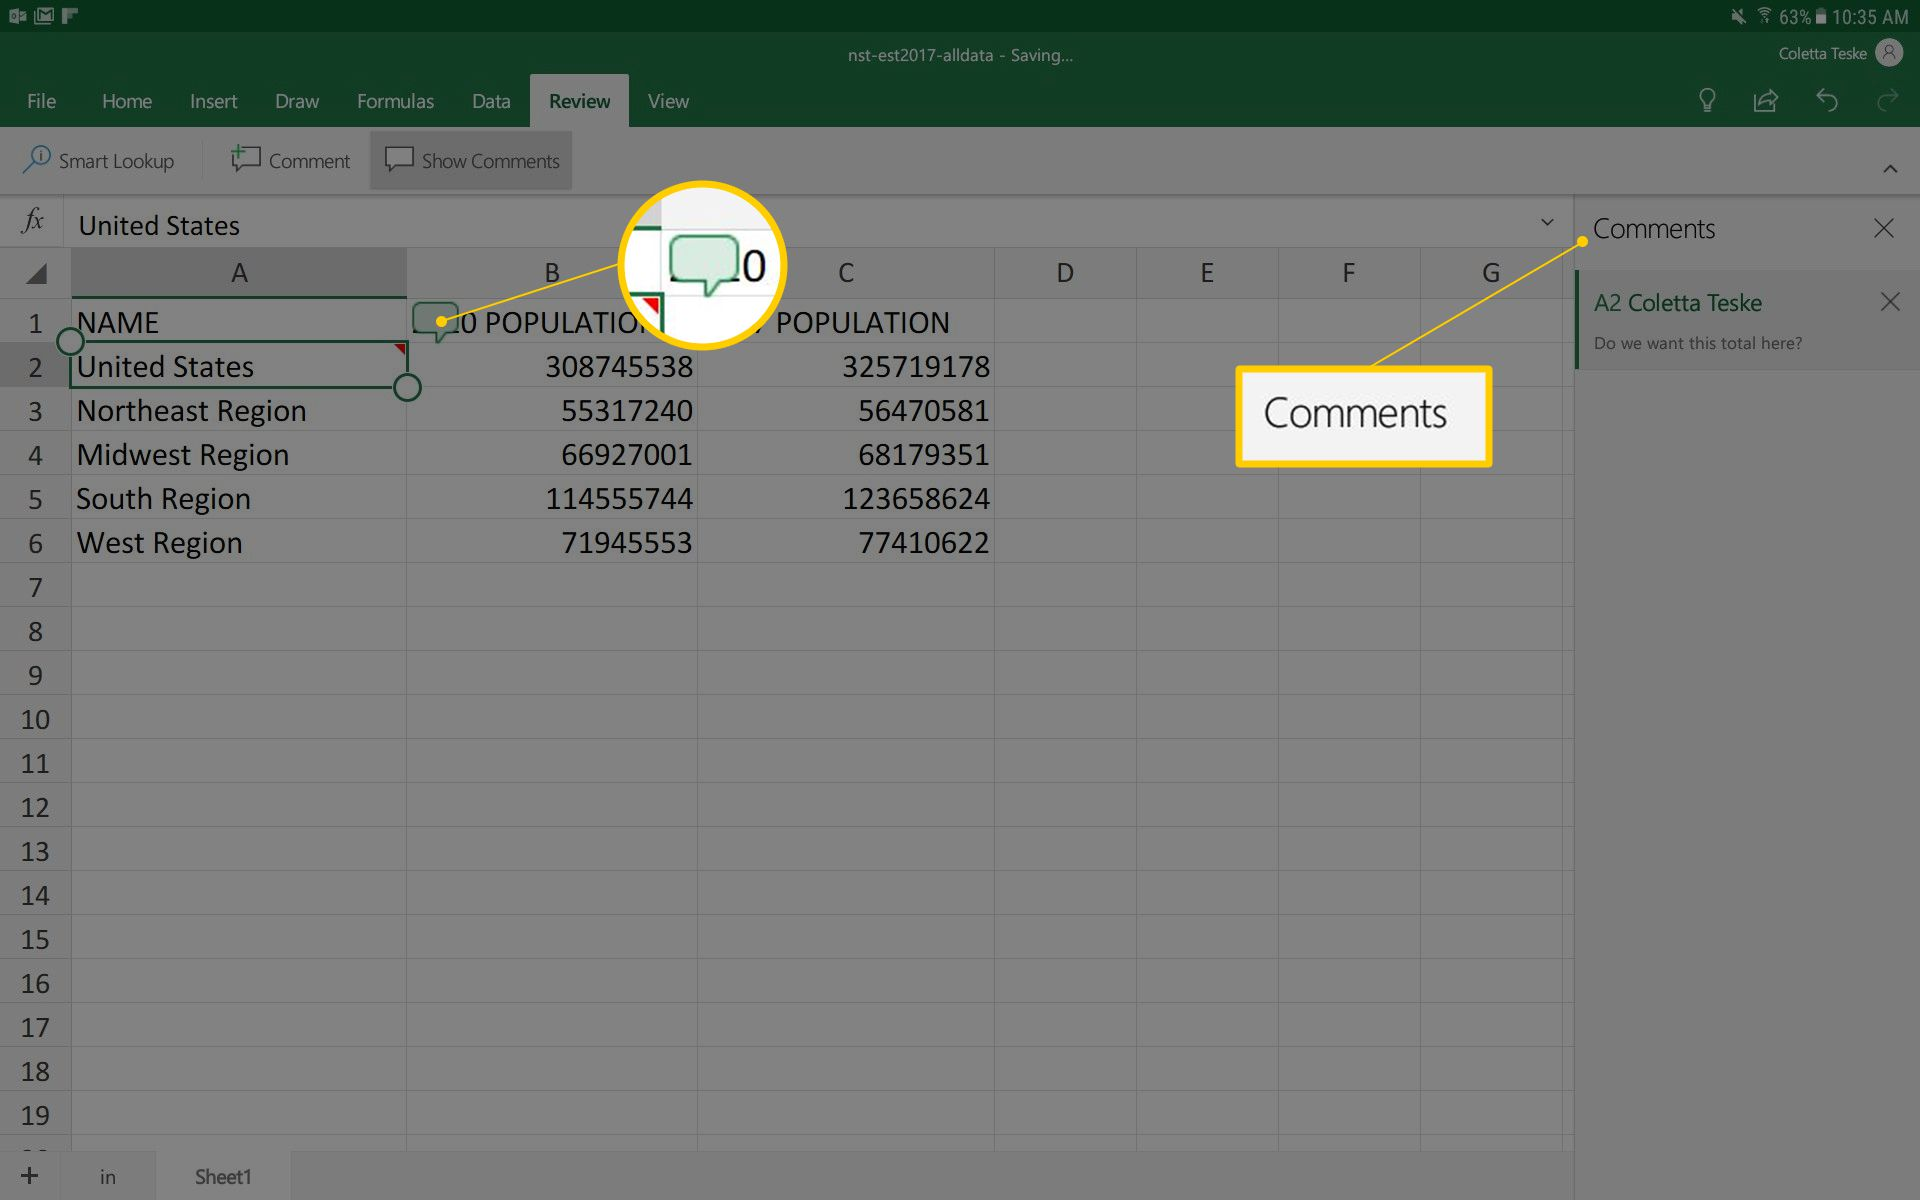 A screenshot showing how to make a comment in an Excel for Android spreadsheet